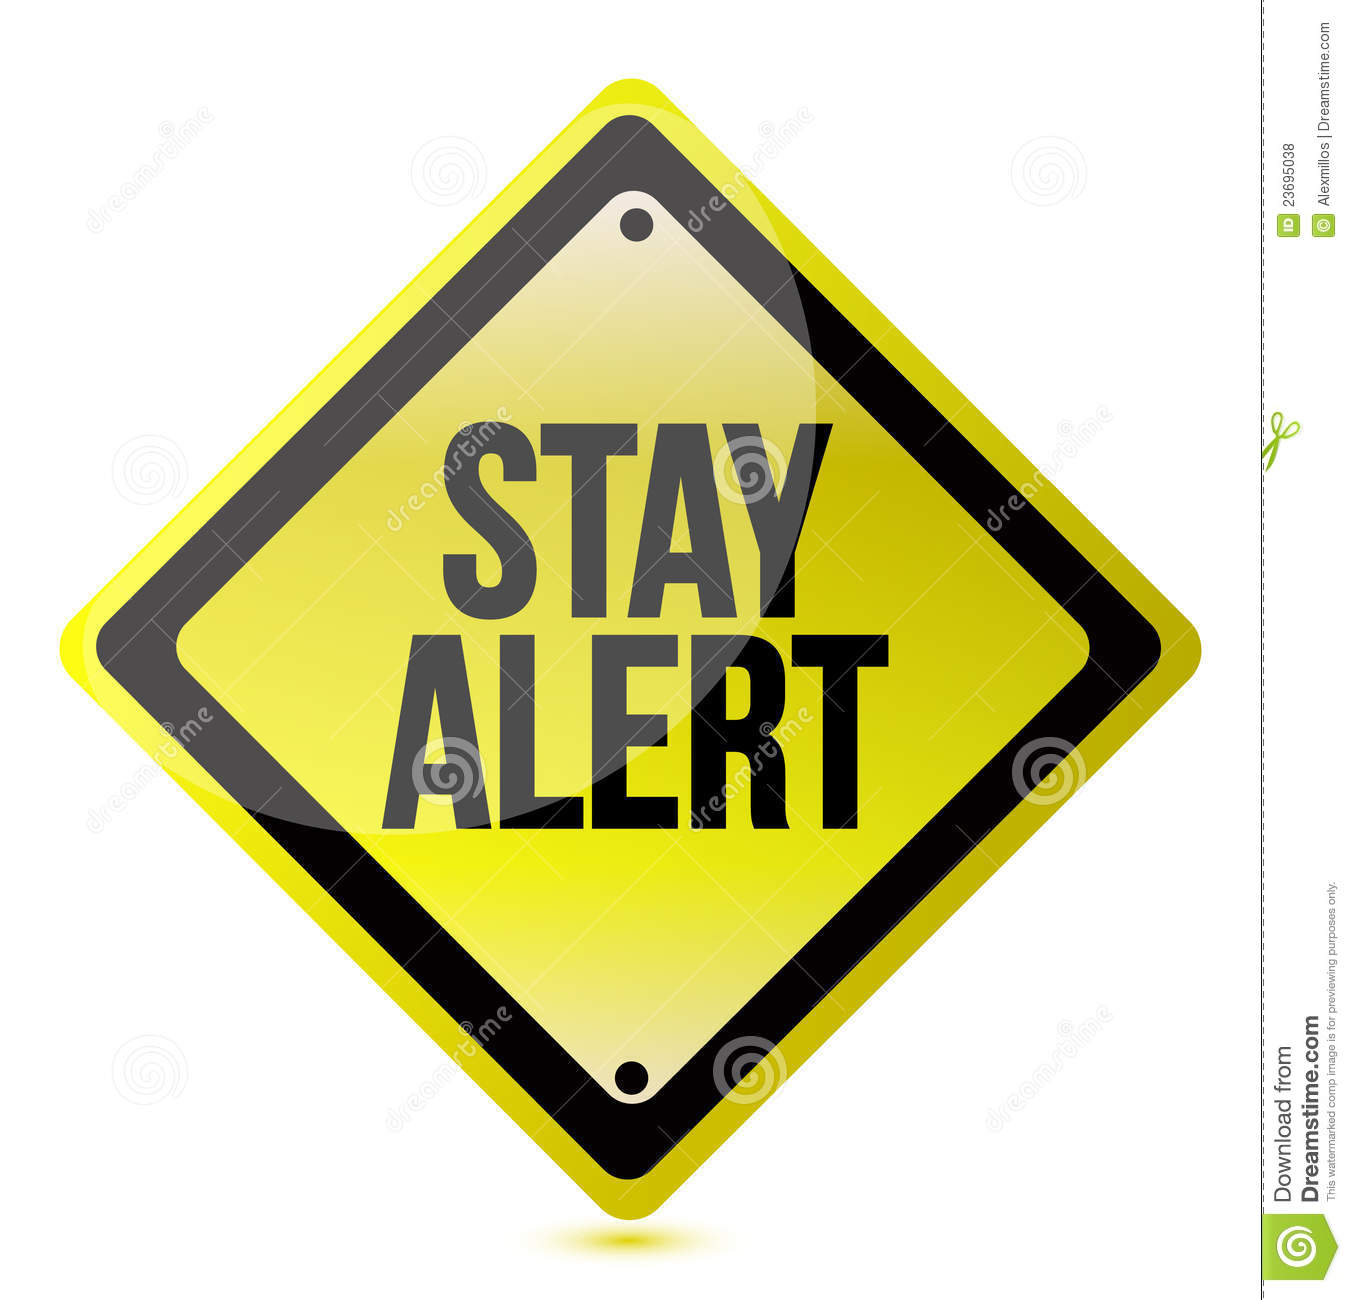 Stay Alert Yellow Illustration Design Over White Royalty Free Stock ...